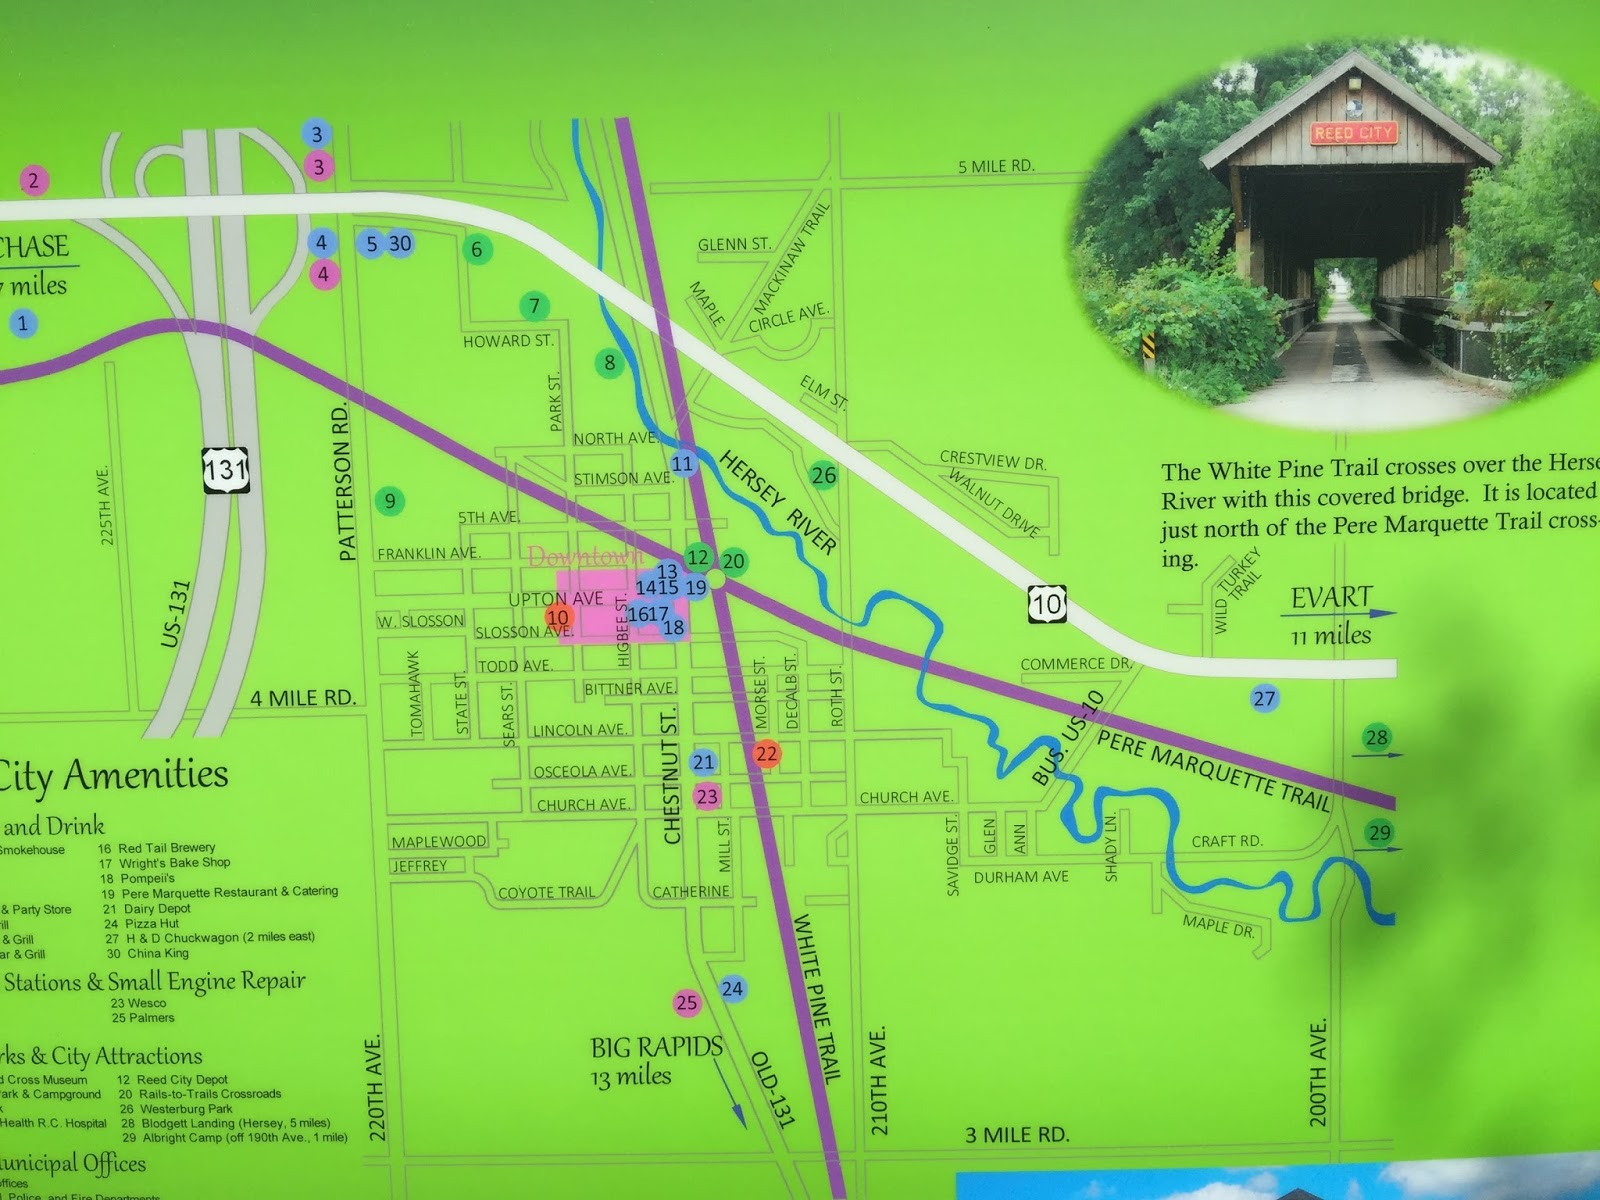 the above map shows two bicycle trails in purple the east west trail is the pere marquette trail and the north south trail is the white pine trail